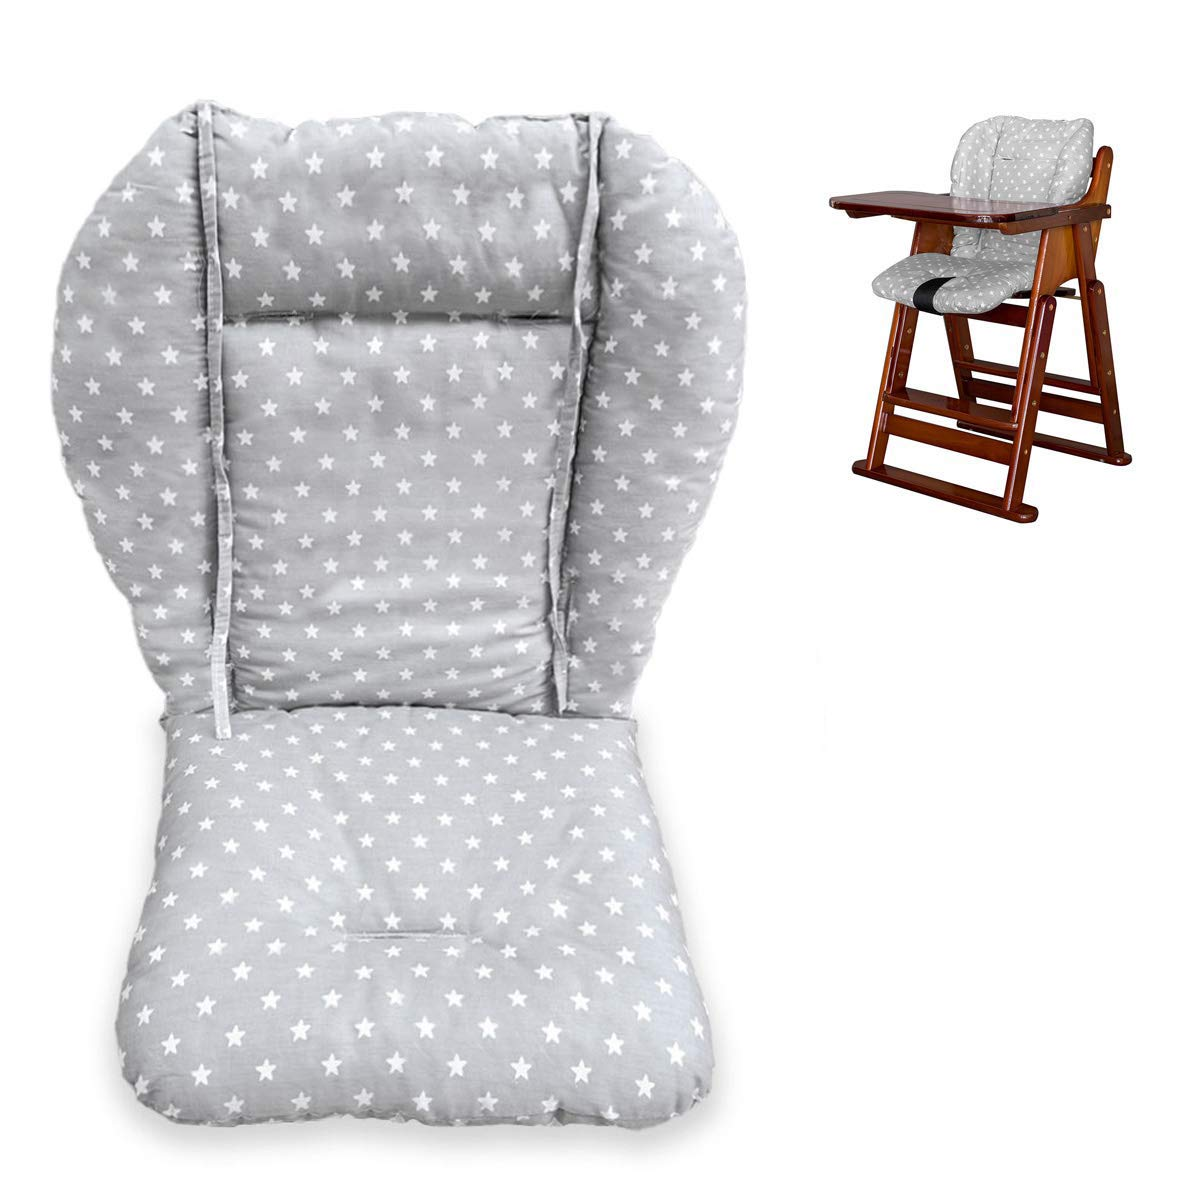 Twoworld High Chair Cushion San Free shipping Antonio Mall Baby Large Se Thickening